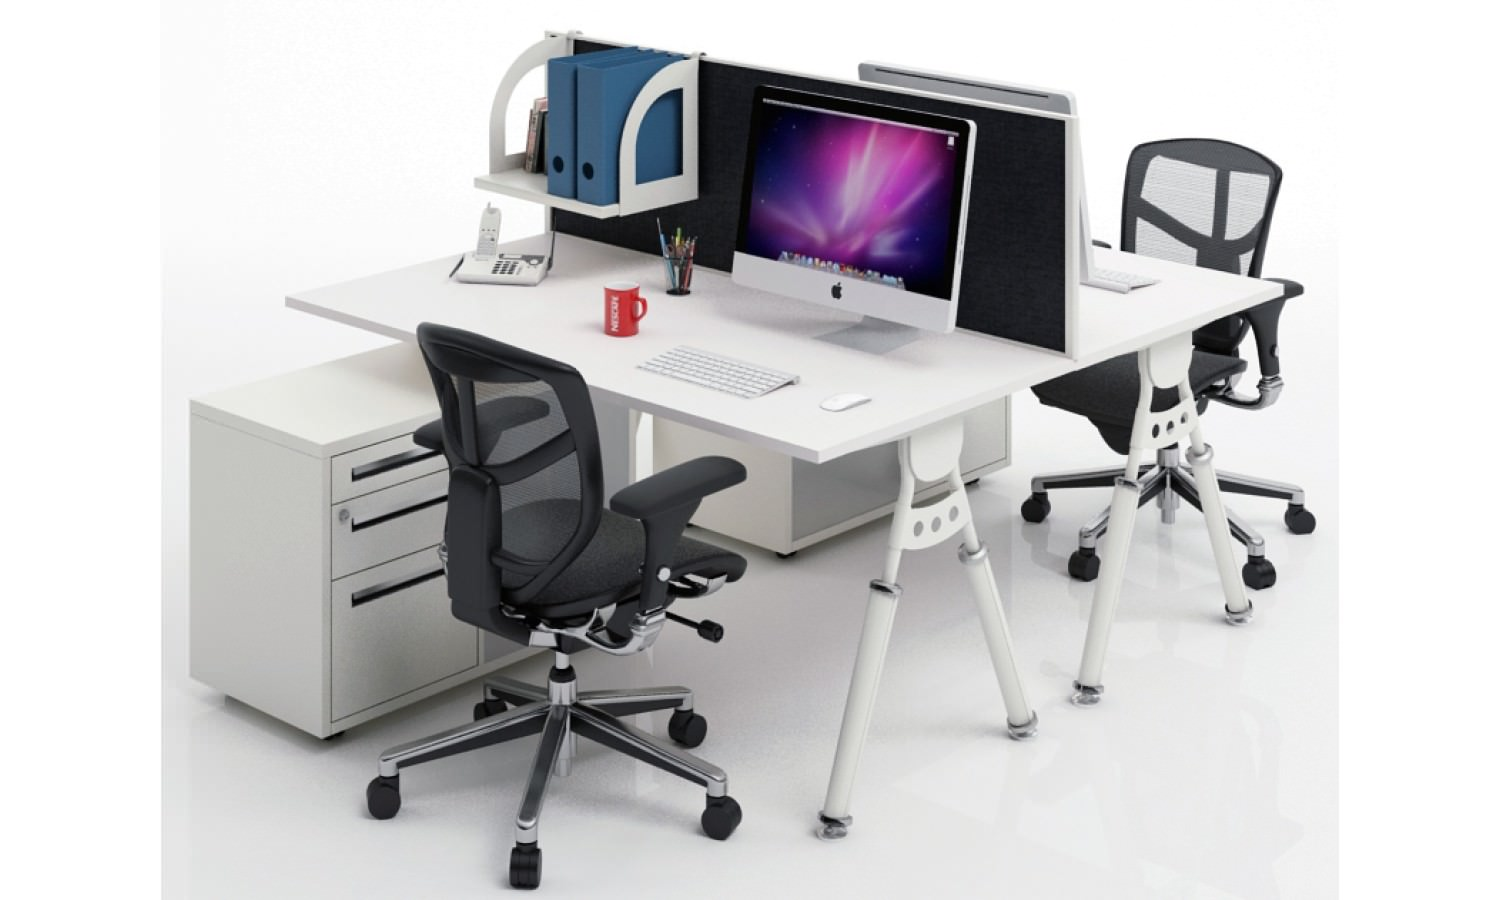 Captivating Two Sided Office Desk For Computers Two Units Of Movable Office Chairs  Mounted Shelf For Organizing